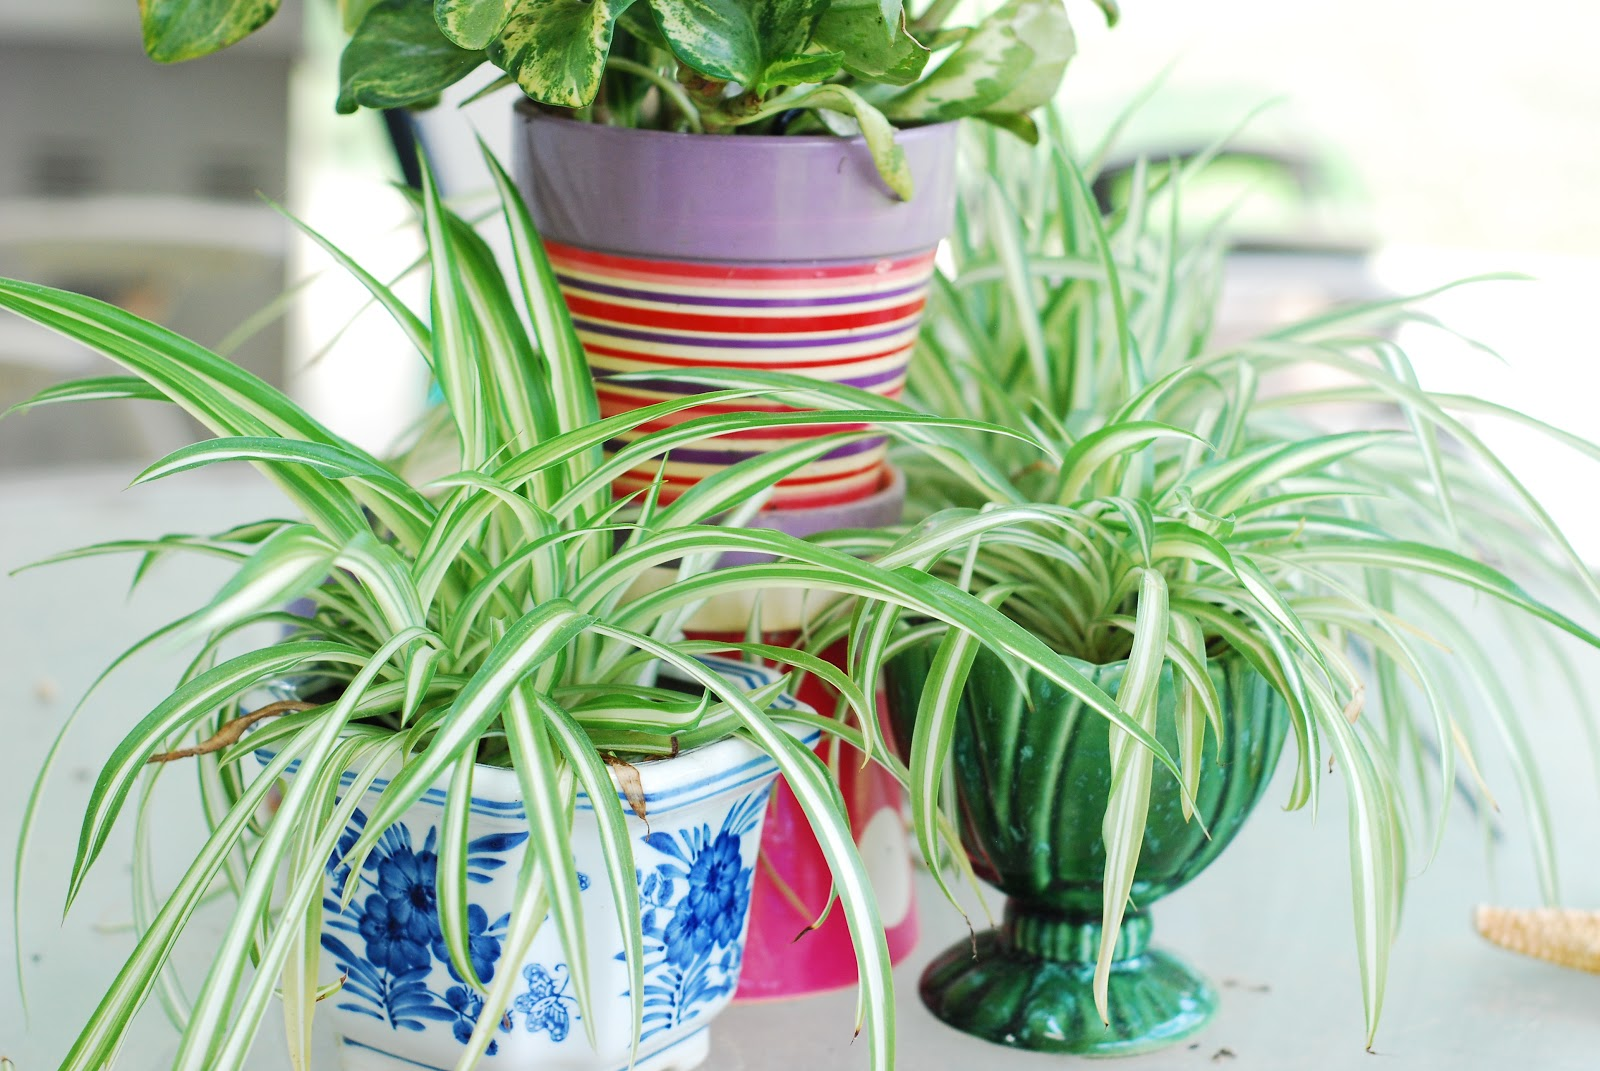 Best indoor garden plants caring for your indoor miniature gardens the mini indoor plants - Popular indoor plants ...